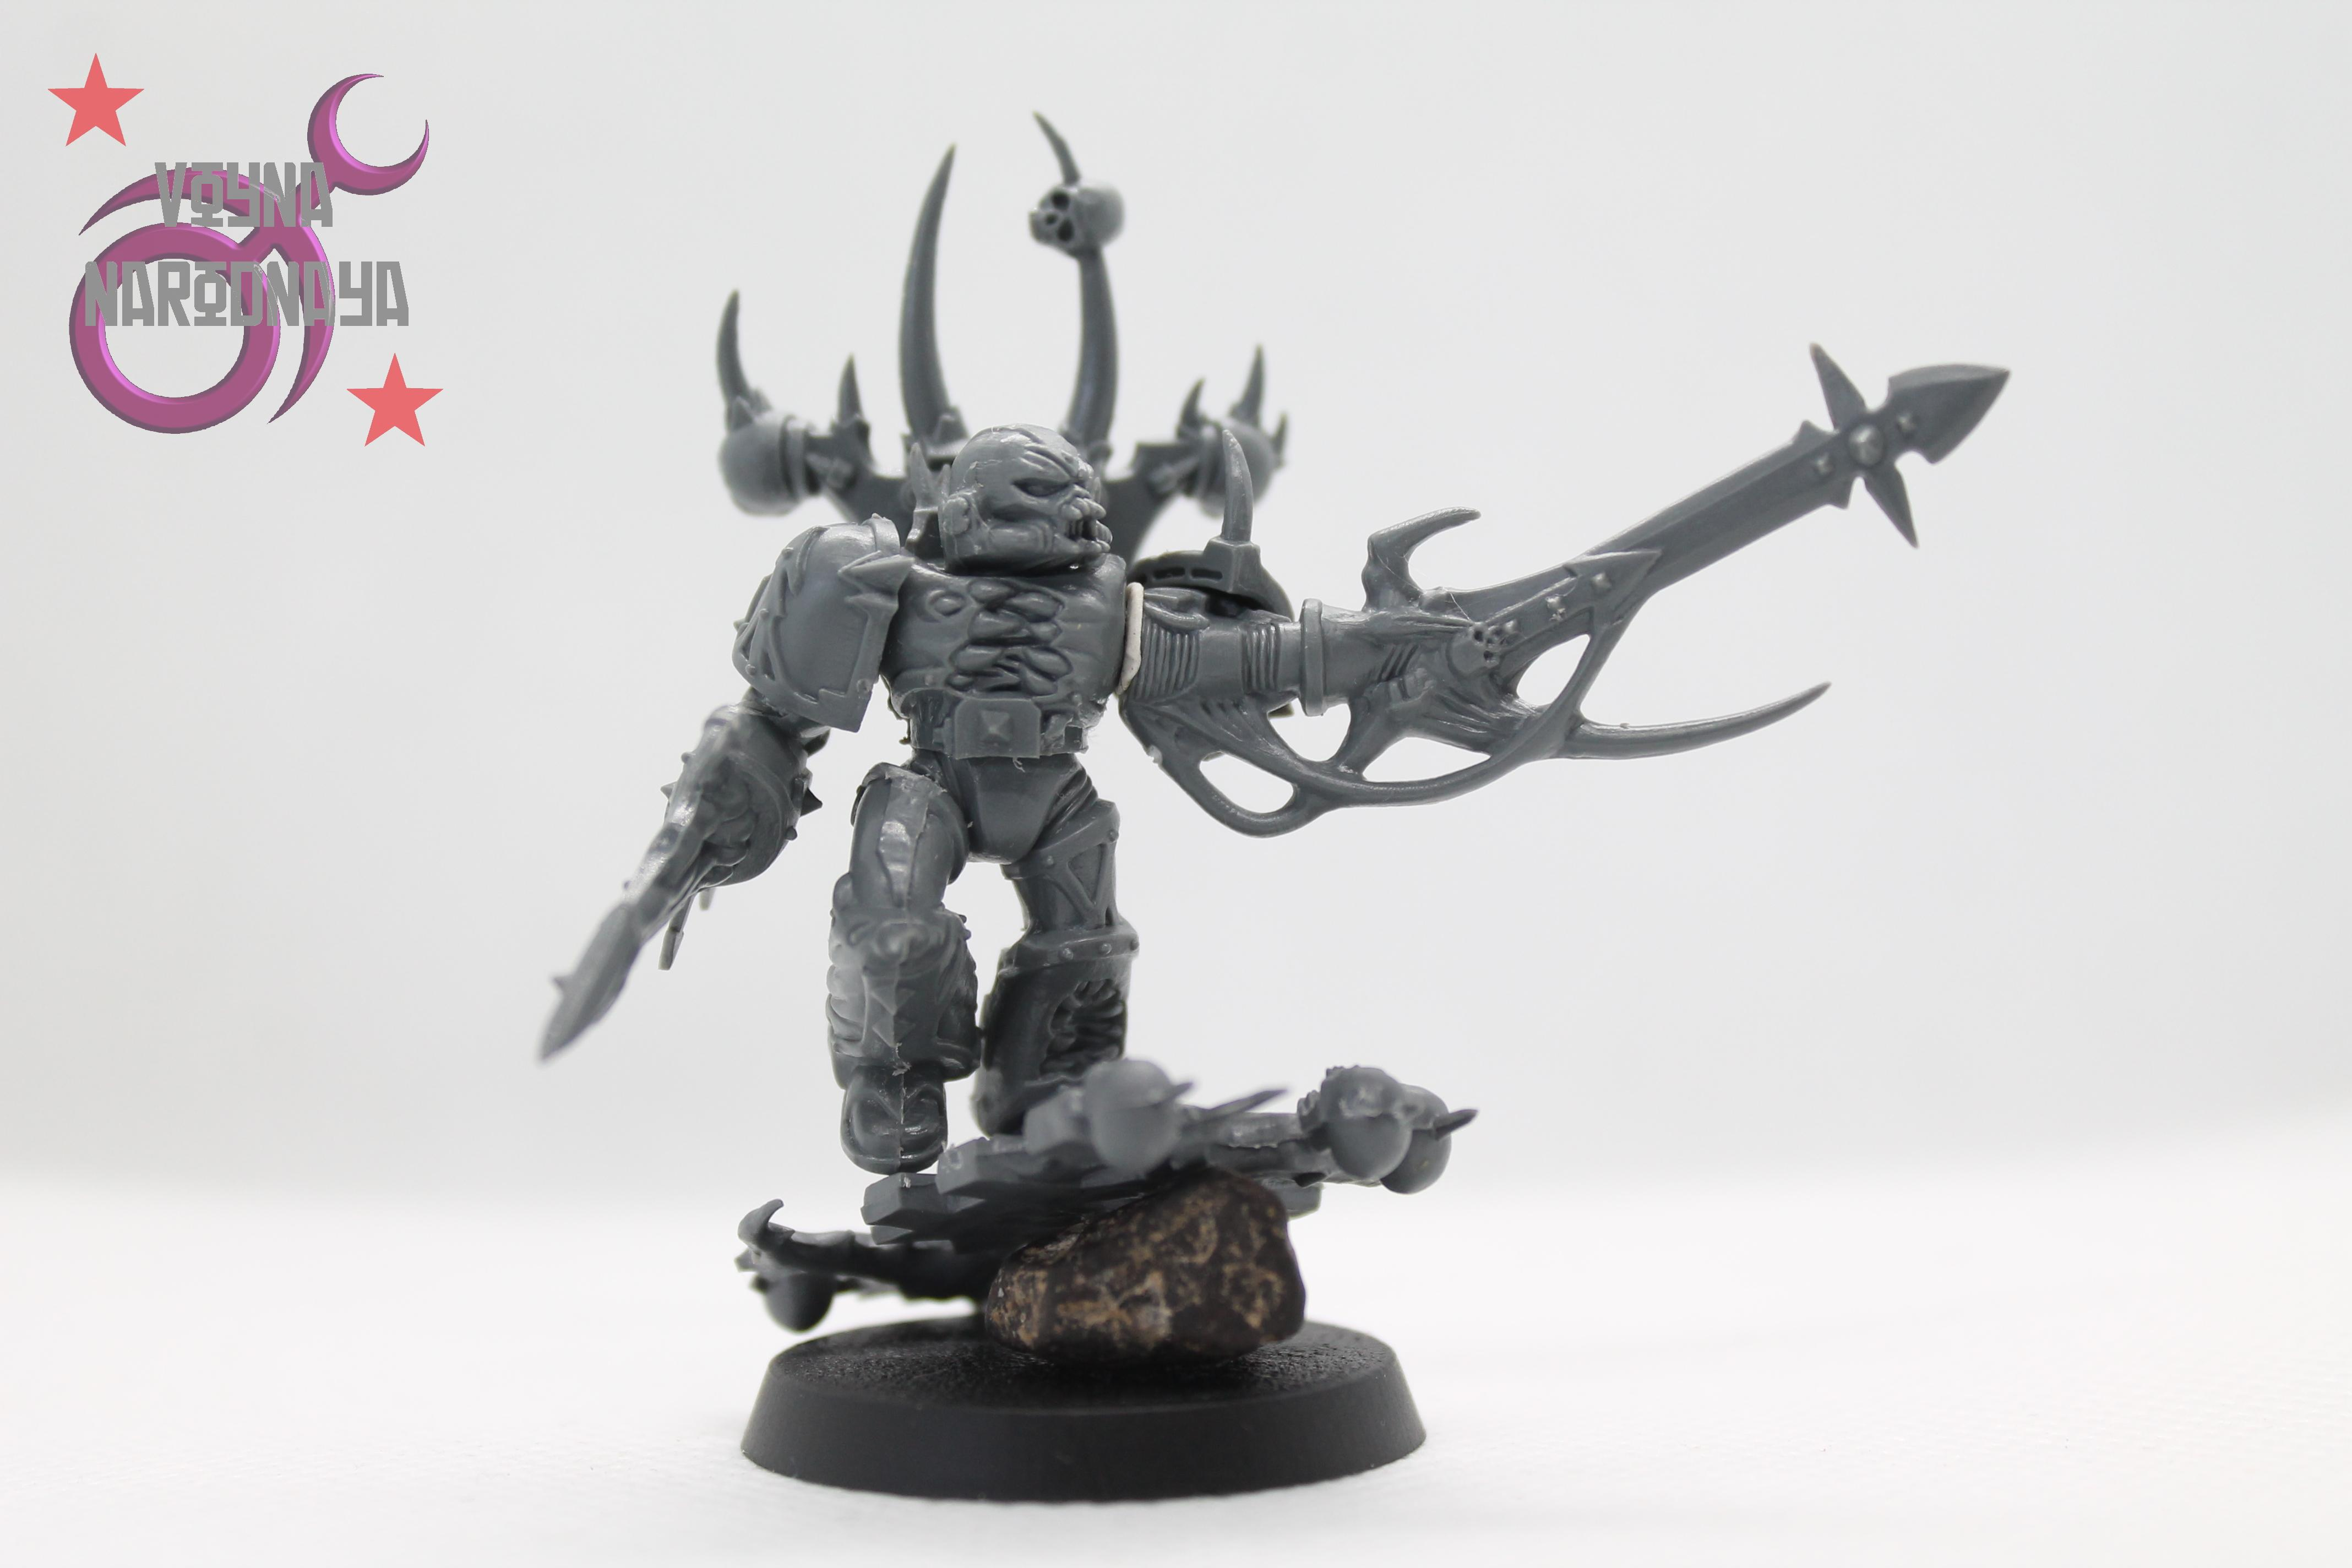 Chaos Space Marines, Emperor's Children, Heretic Astartes, Lord, Slaanesh